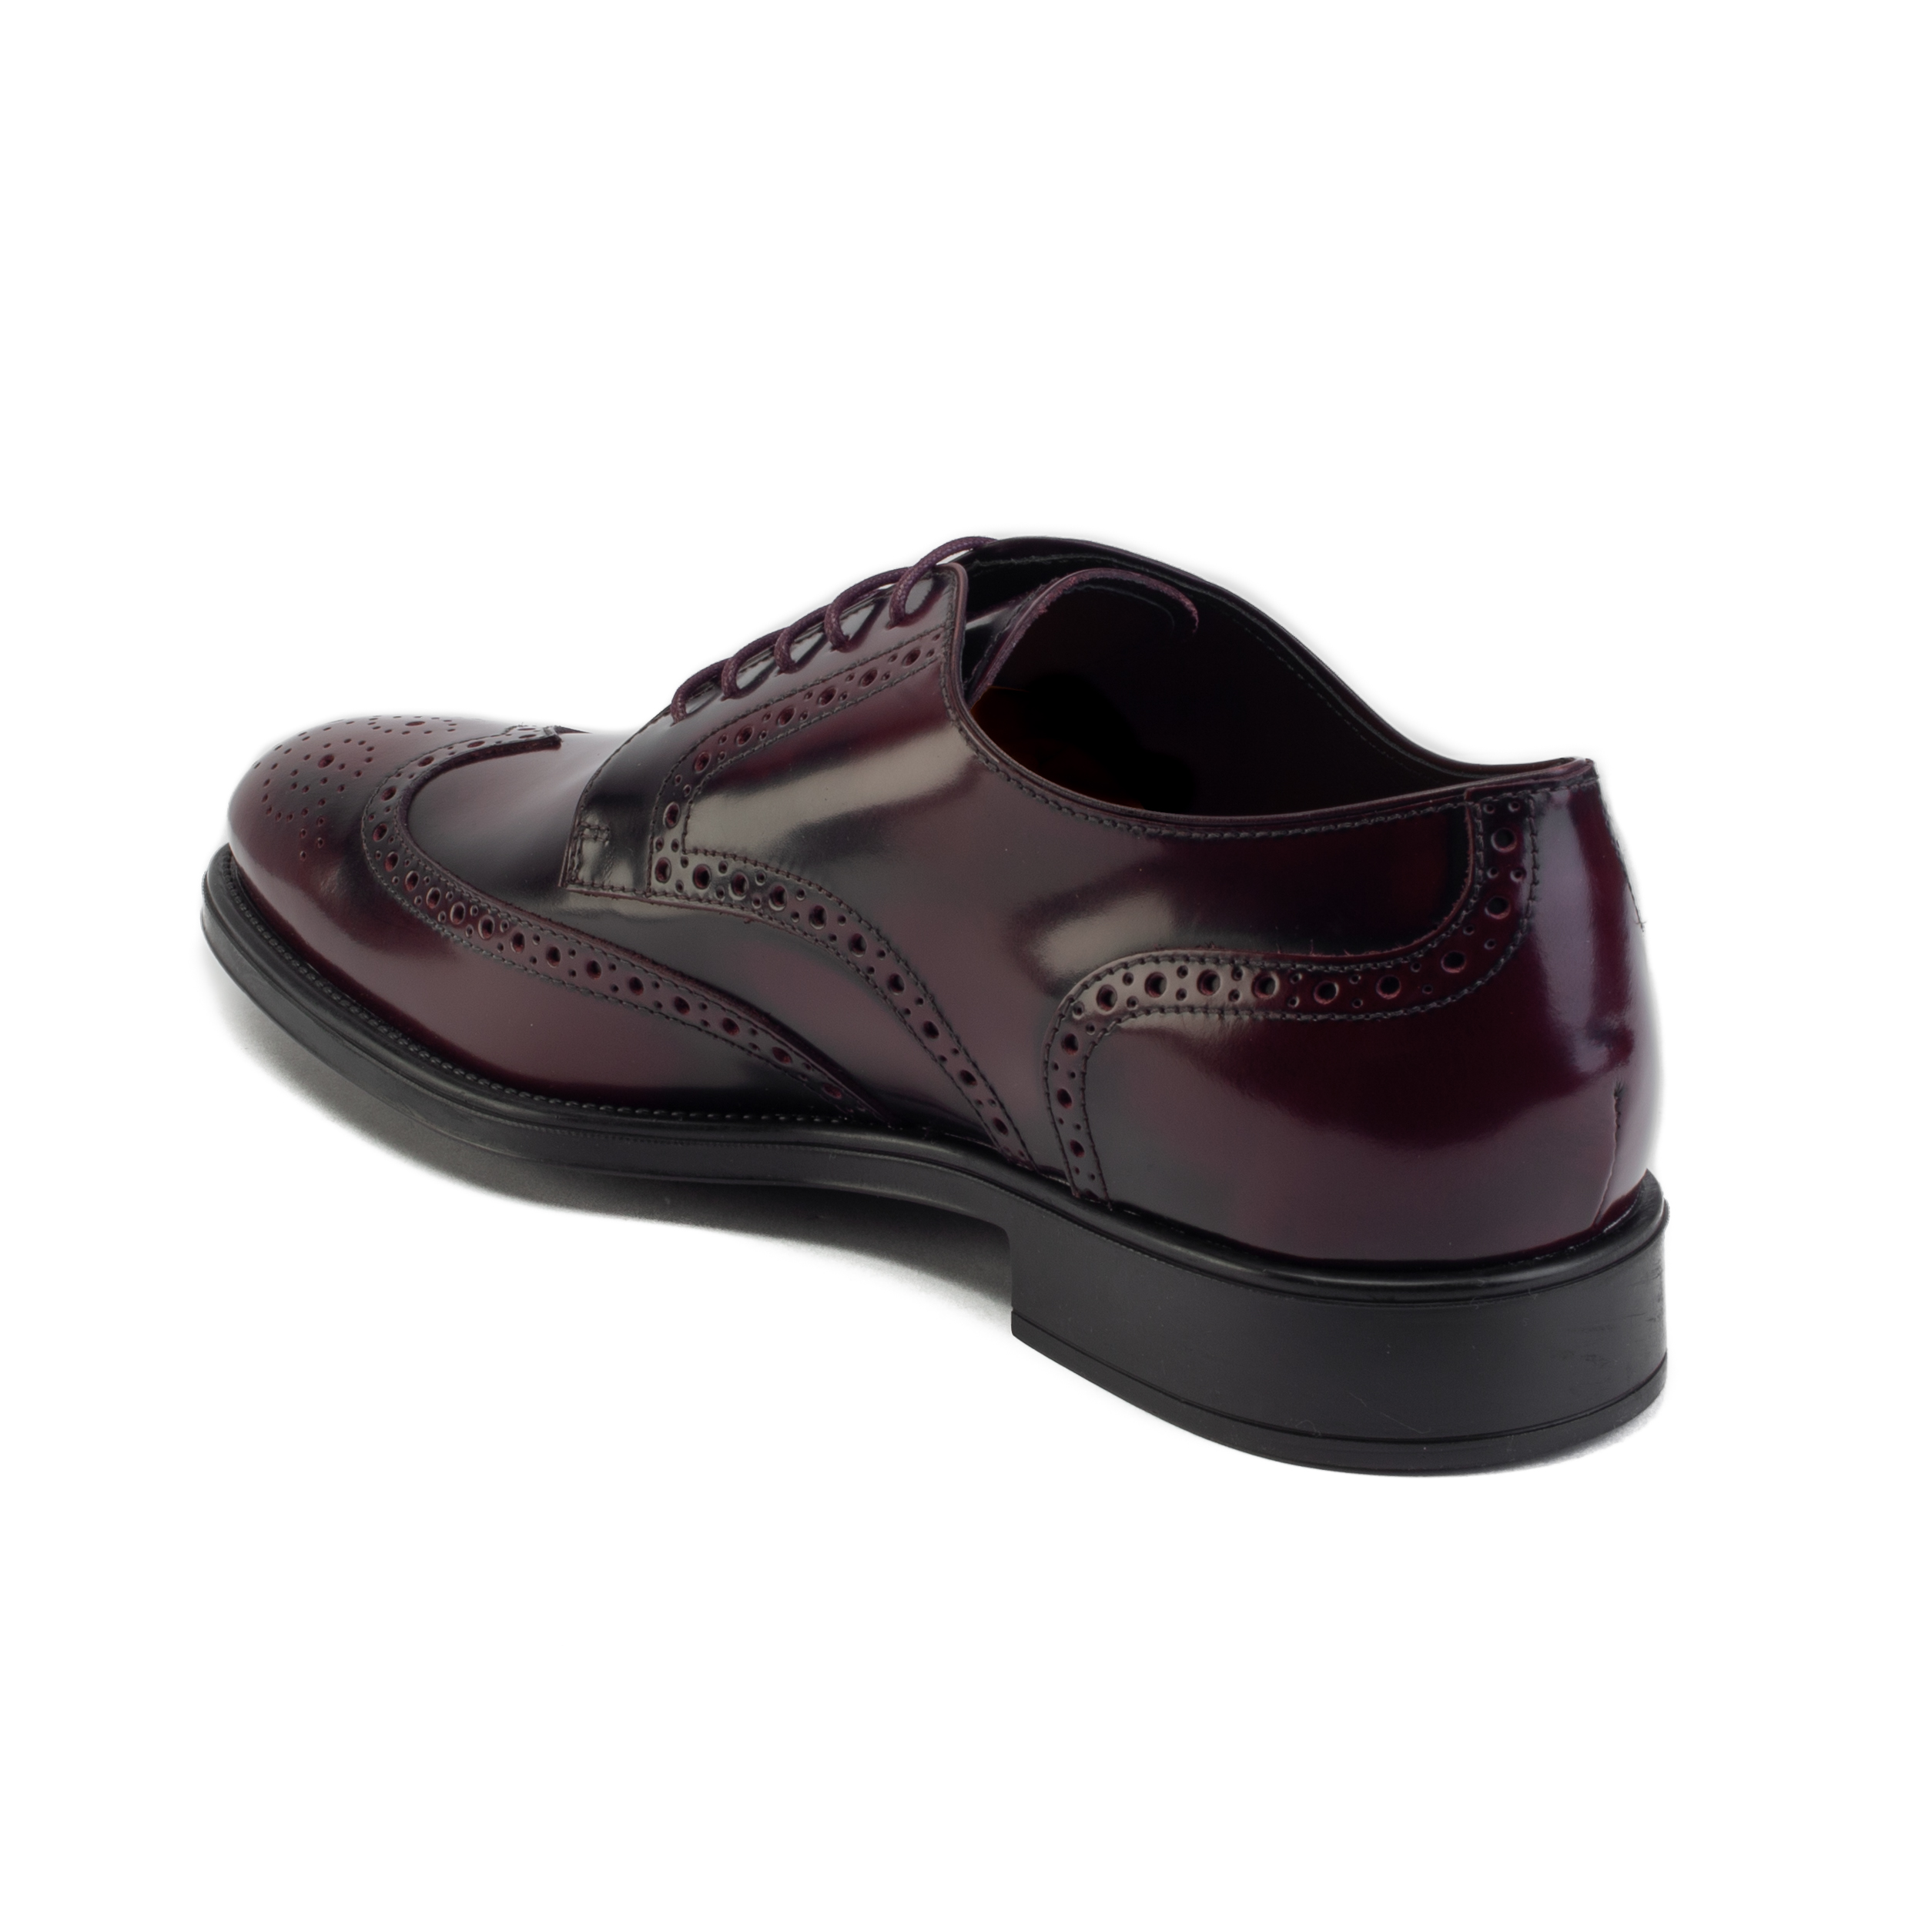 d215d5915b6 Tod's Men's Leather Derby Brogue Oxford Dress Shoes Burgundy | eBay